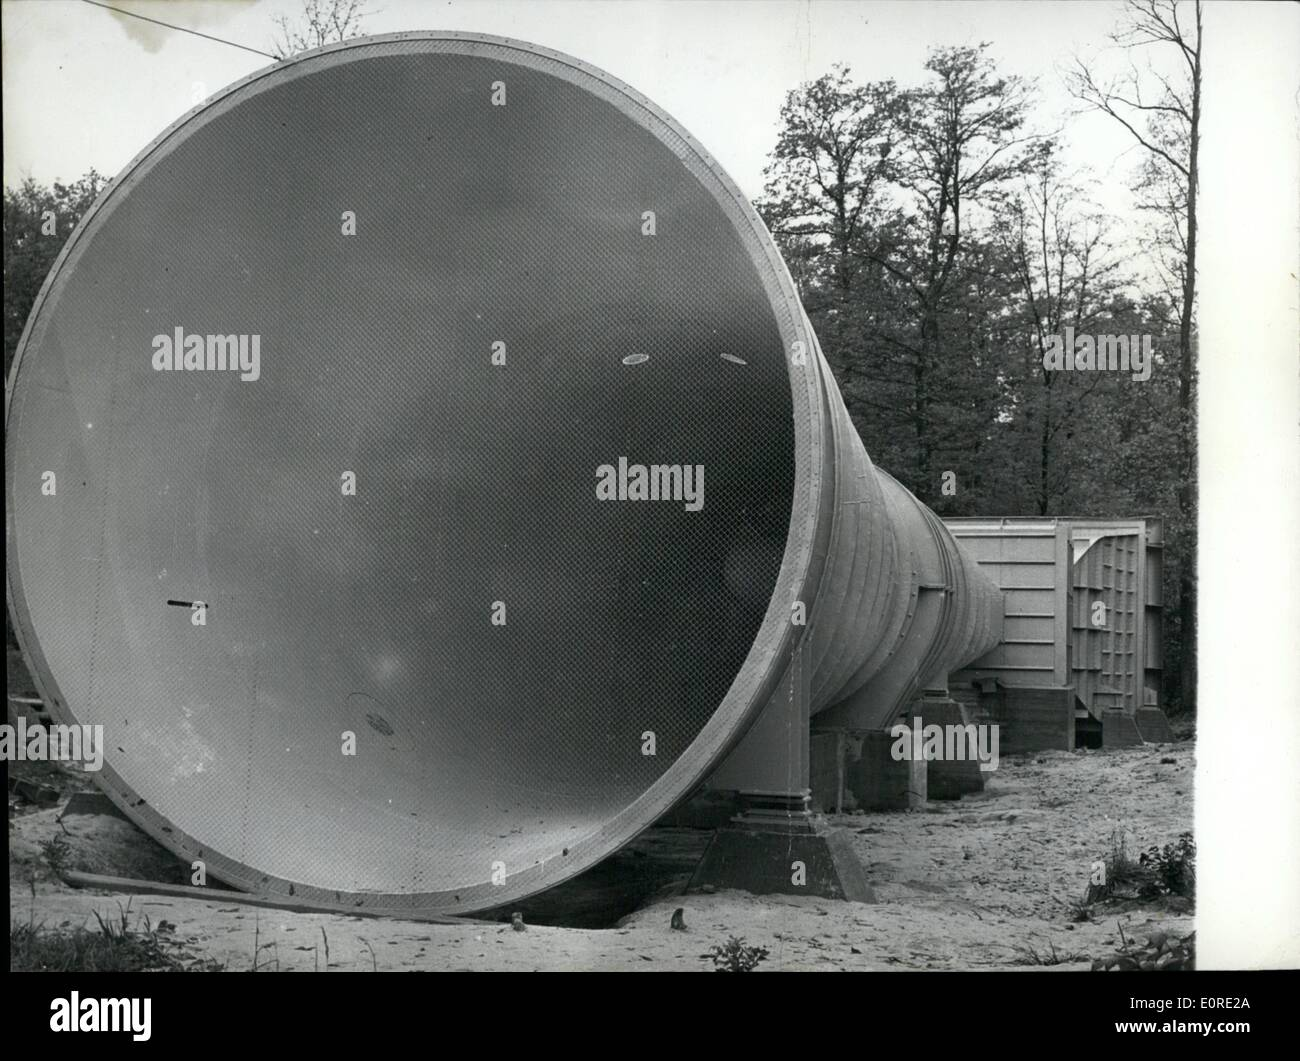 Feb. 02, 1959 - Making much wind: Like a monster of the prehistory this 40 meters long colossus in the 'Pfappen - wood' near Stuttgart. The wind tunnel with a diameter of 3 meters belongs to the 'Technical High School' of stuttgart to the institute of aero-gasdynamic. The research institute is just build up and will begin working in the autumn of this year. The costs will run to several millions. - Stock Image